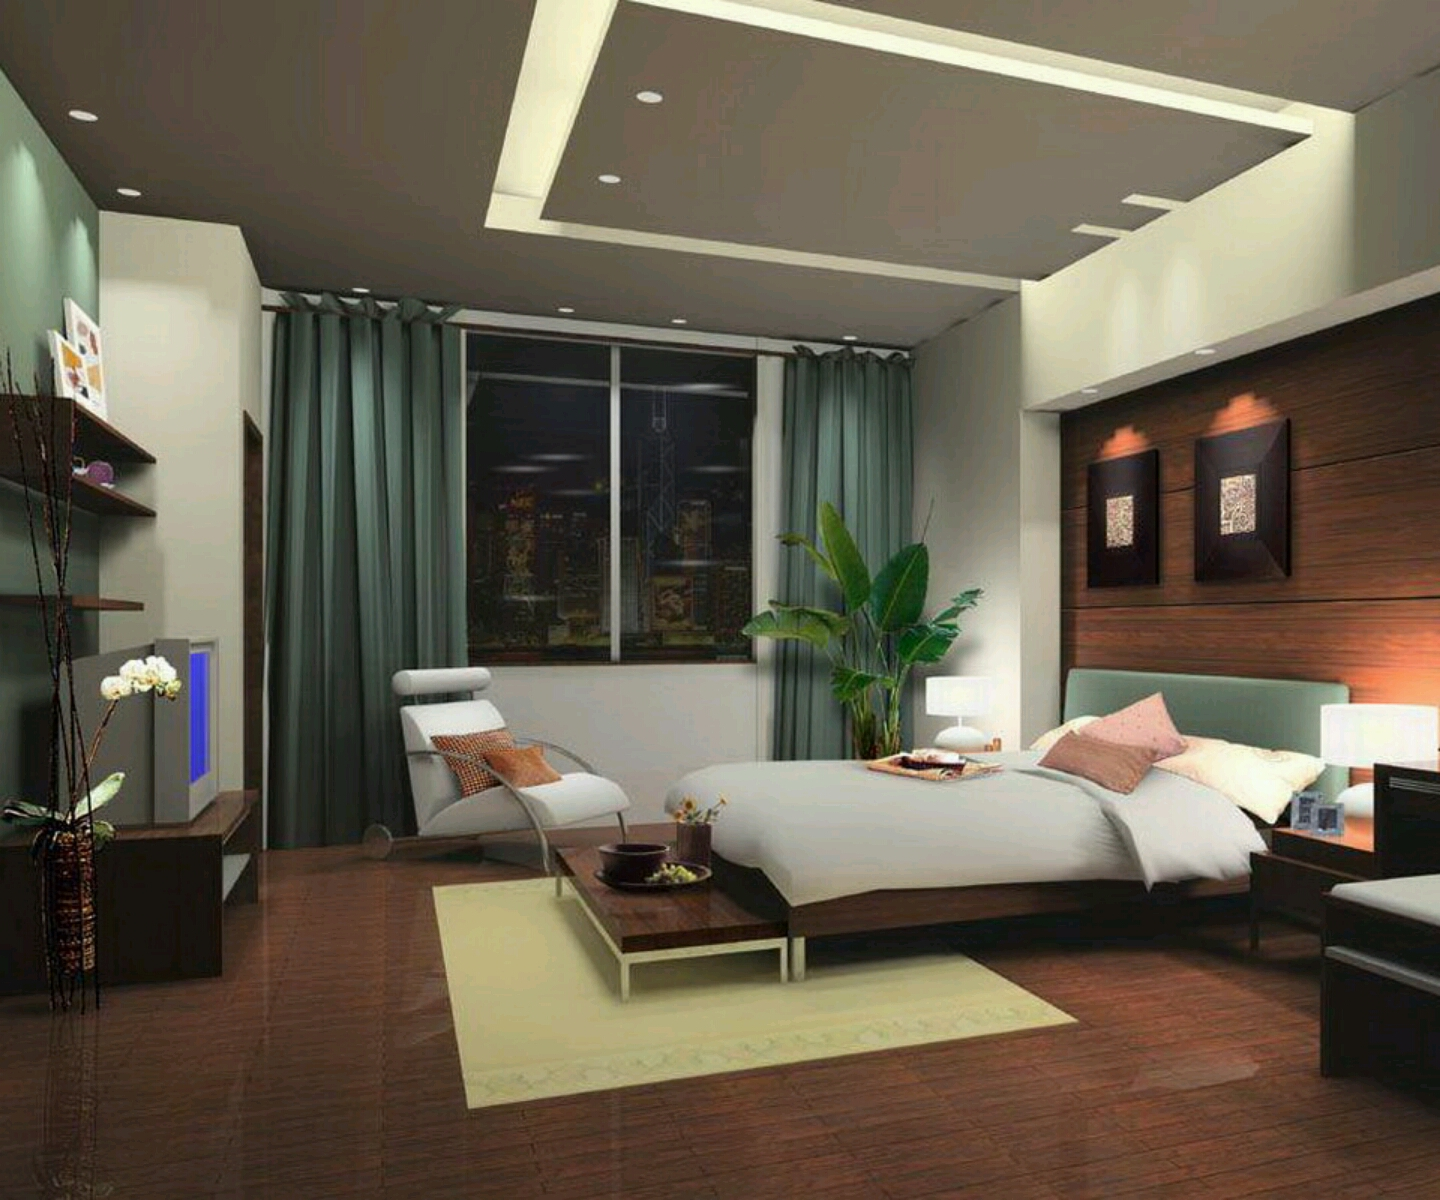 New home designs latest modern bedrooms designs best ideas for Best bedroom pictures